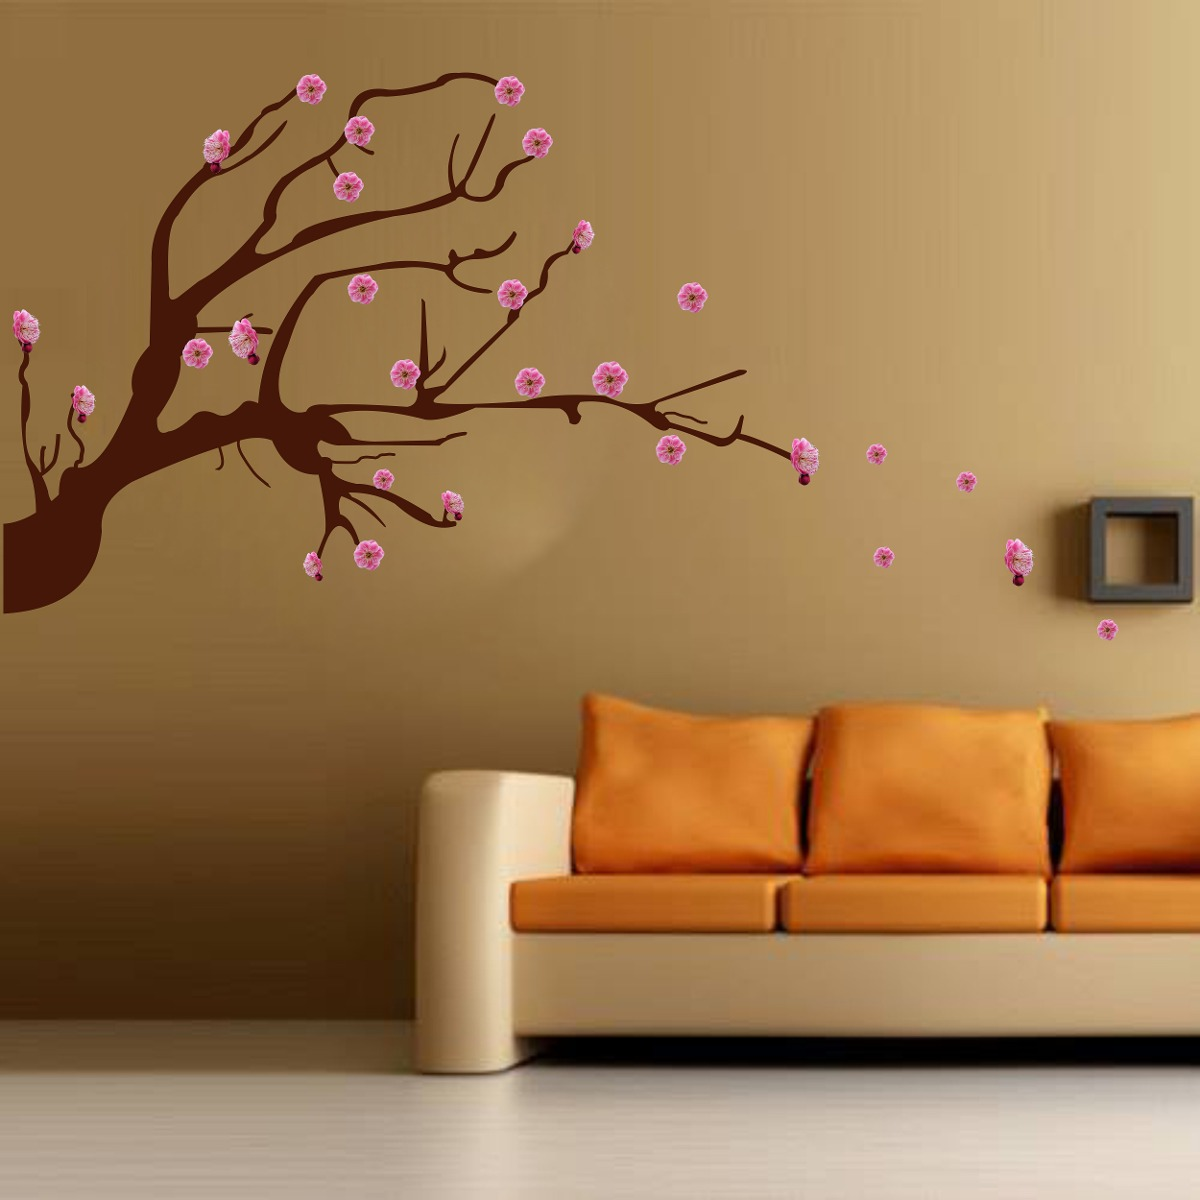 Vinilo Pared Arbol De Cerezo Ceibo Decoracion Wall